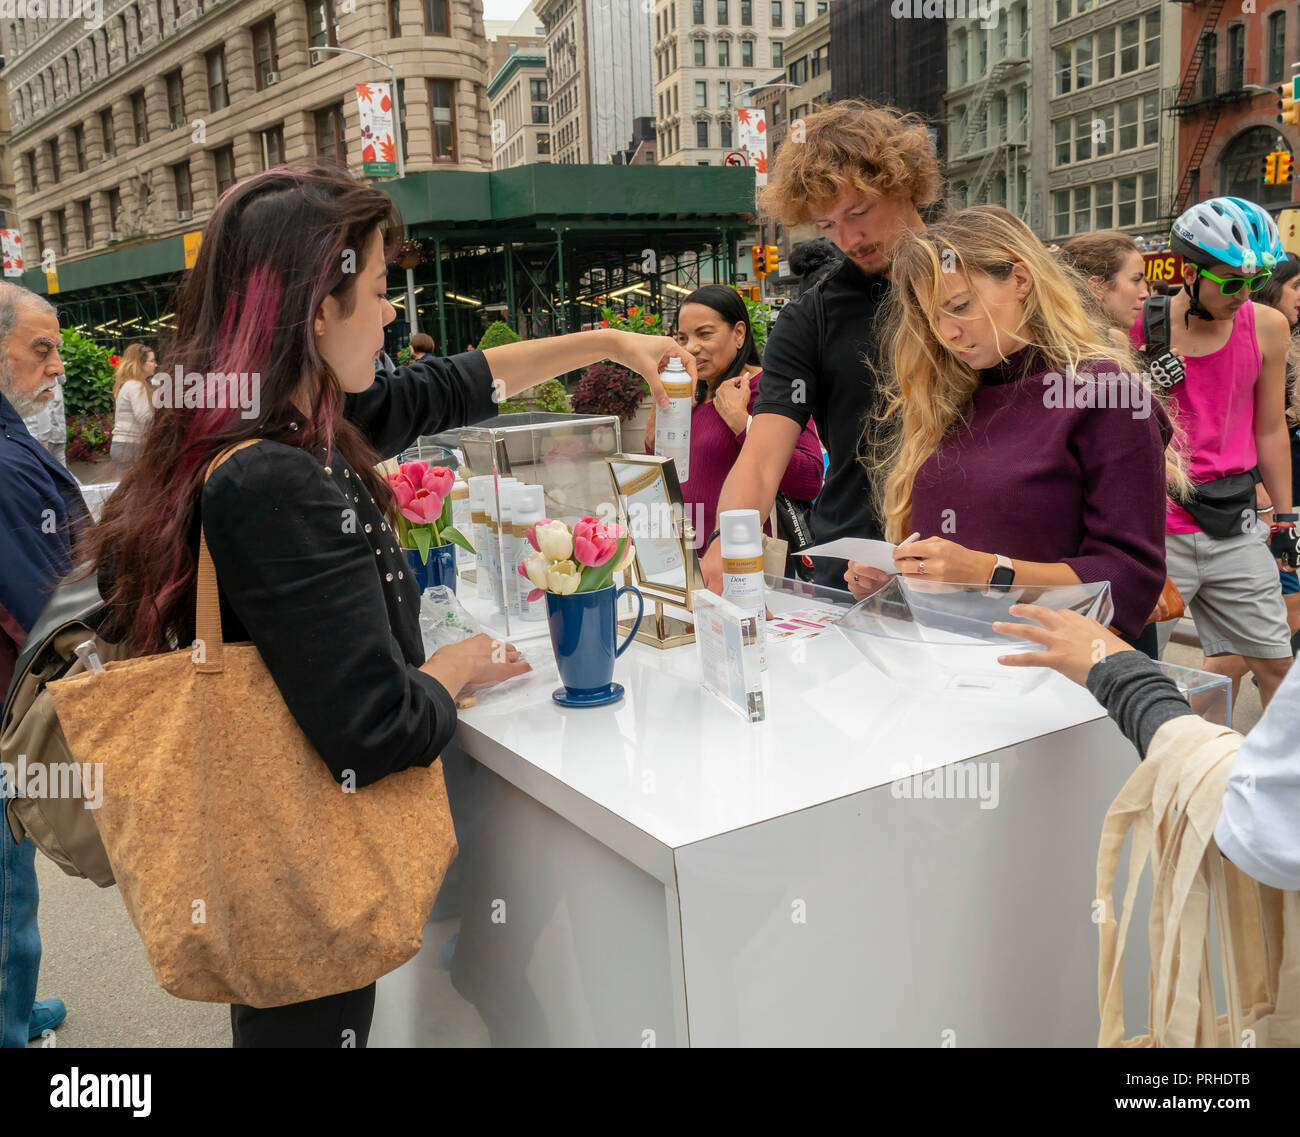 Crowds pick up sahmpoo samples at the Dunkin' and Dove collaboration branding event in Flatiron Plaza in New York on Monday, October 1, 2018. Visitors were treated to free cups of coffee and samples of Unilever's Dove brand dry shampoo. Apparently, according to the organizers women run on Dunkin' and dry shampoo enabling them to quickly get up and out in the morning. Dunkin' Brands recently changed their name dropping the 'donuts' moniker to better reflect that 60 percent of their sales are coffee beverages. (© Richard B. Levine) - Stock Image